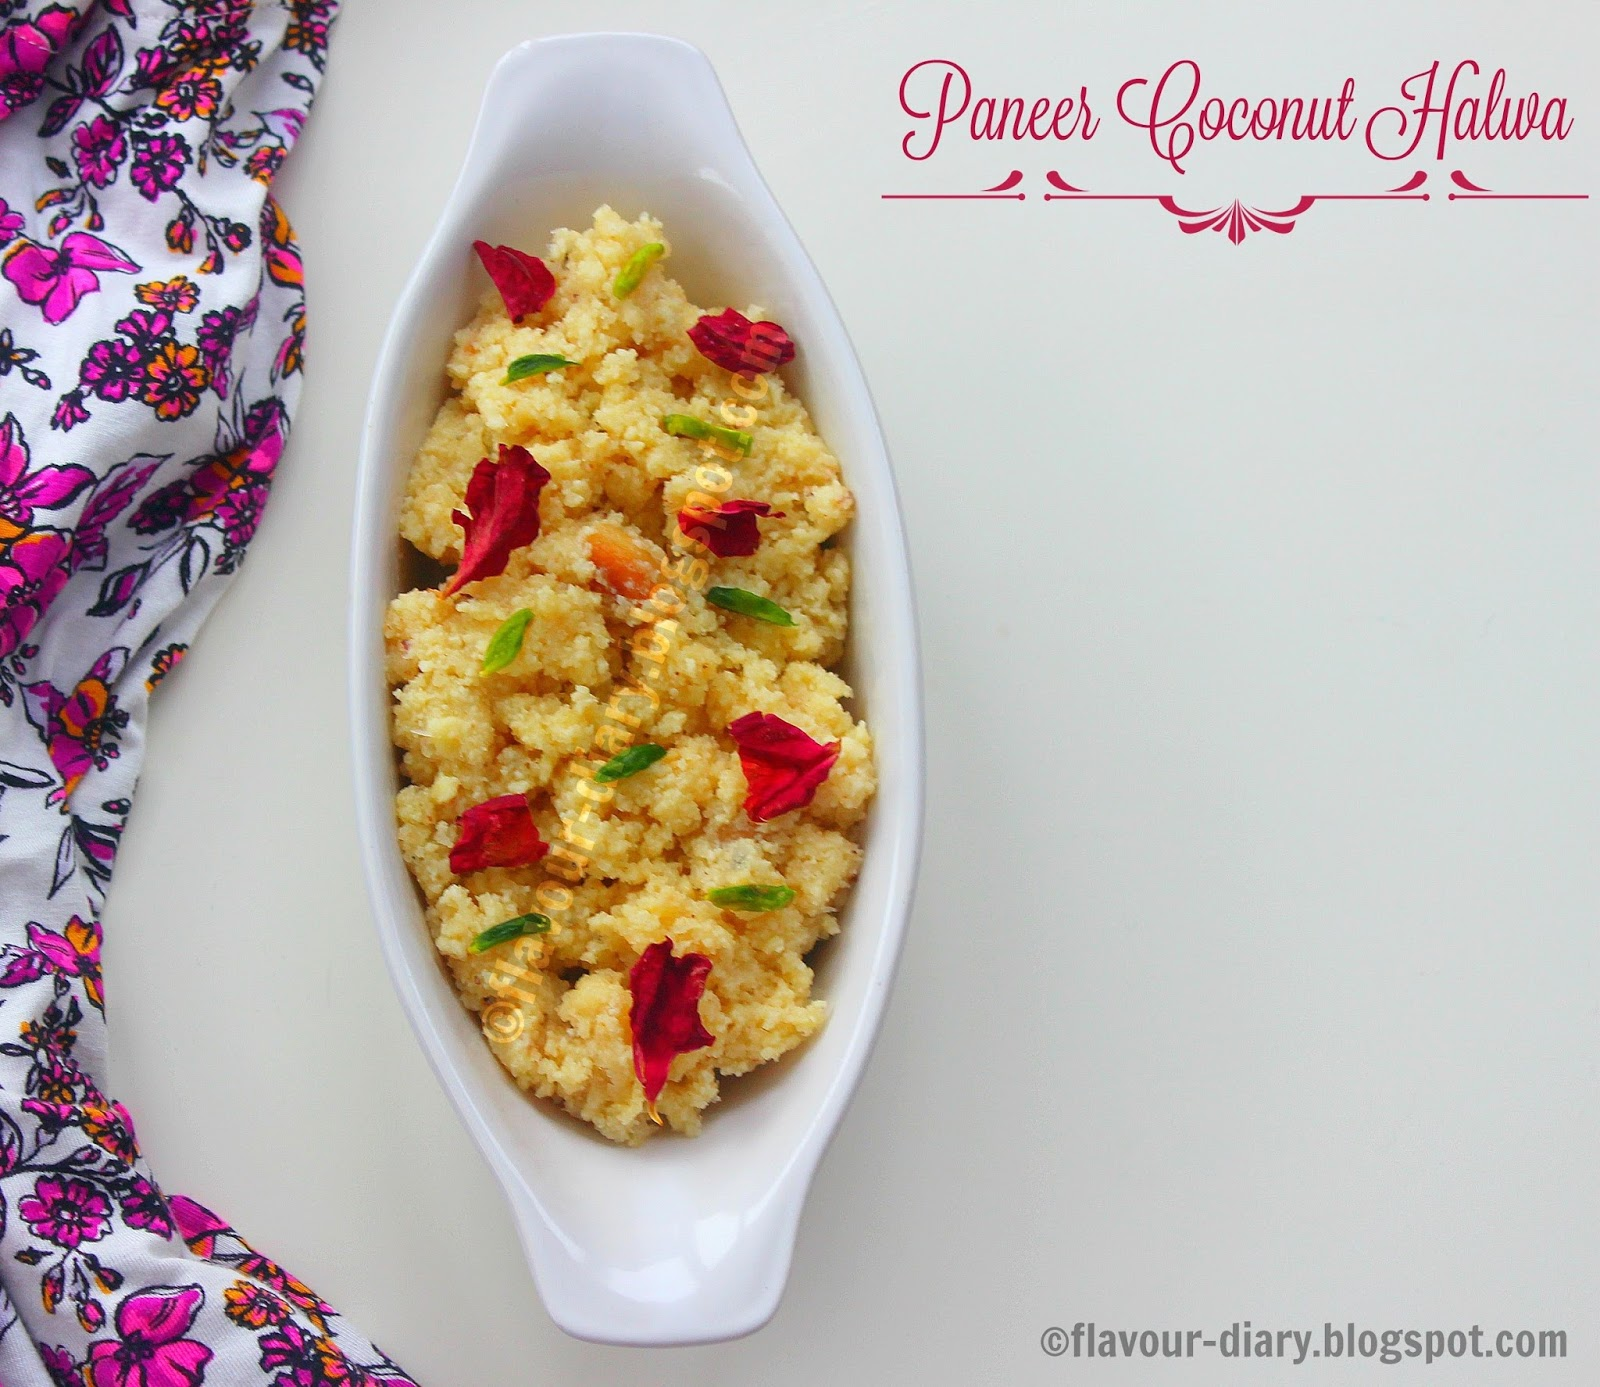 paneer coconut halwa recipes flavour diary